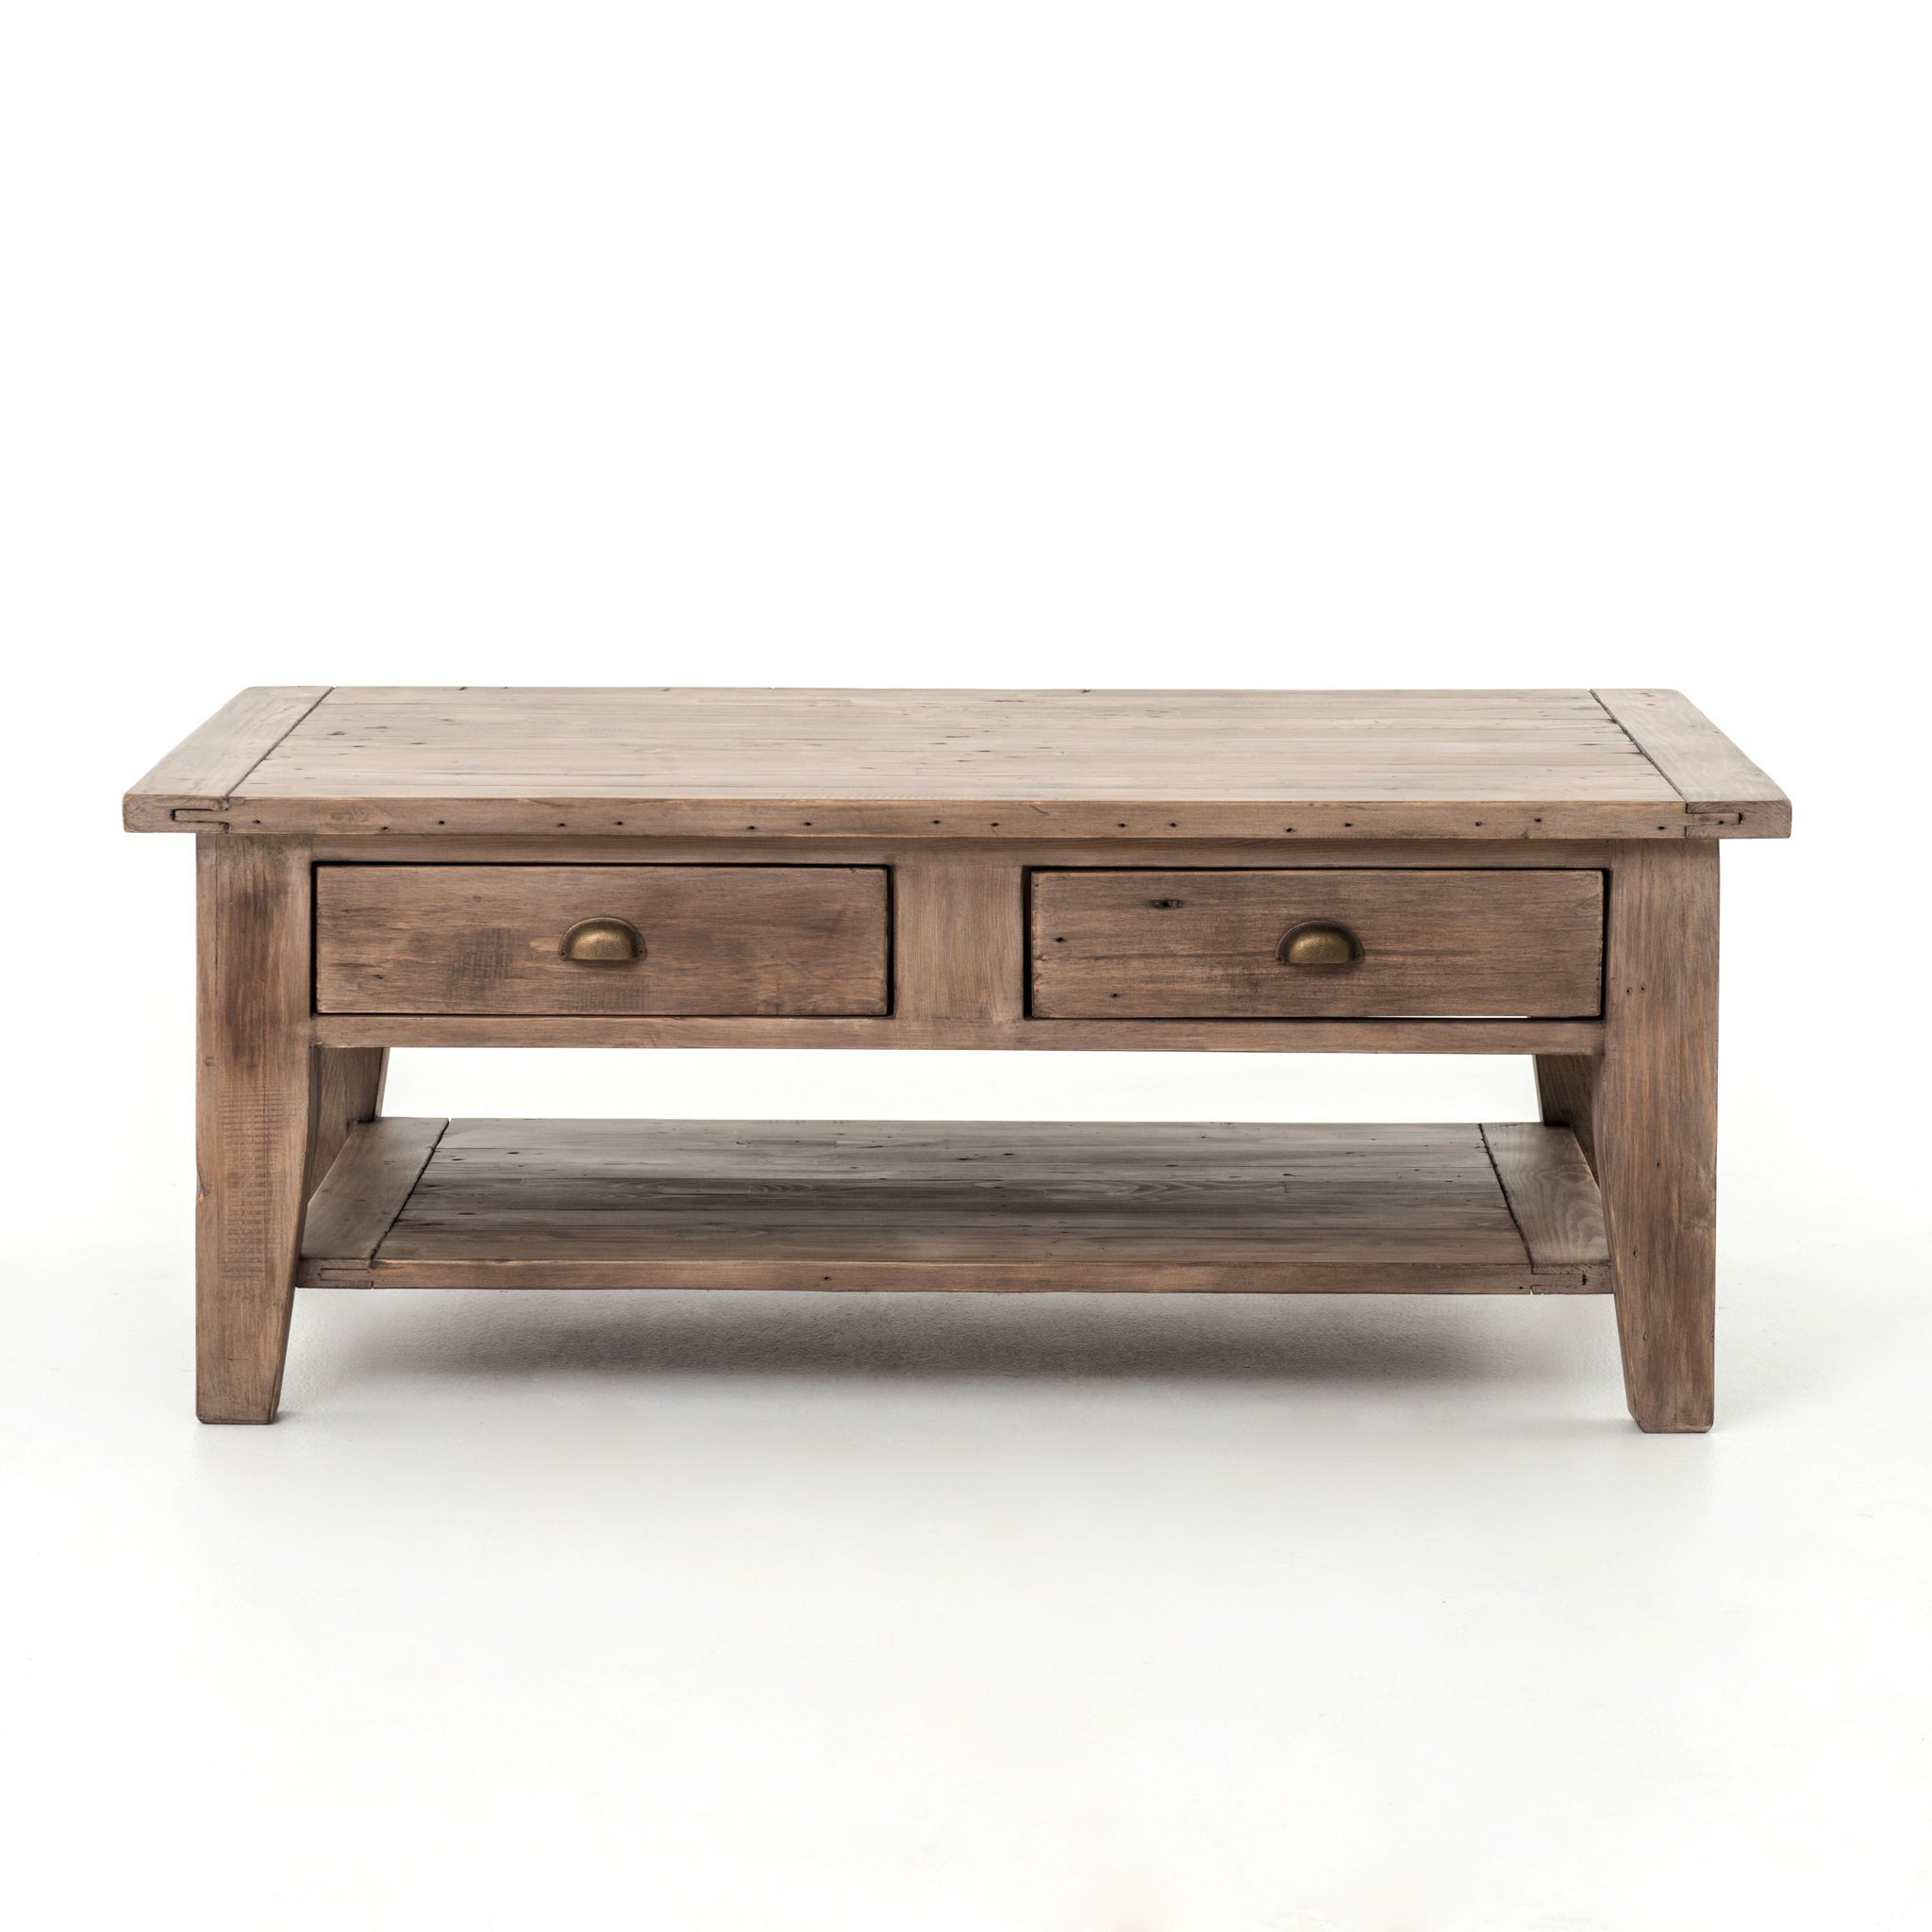 Four Hands Living Room Irish Coast Coffee Table 2drw Shelf Sn A Vica 05 11 Coffee Table Wood Coffee Table Coffee Table With Drawers [ 2048 x 2048 Pixel ]